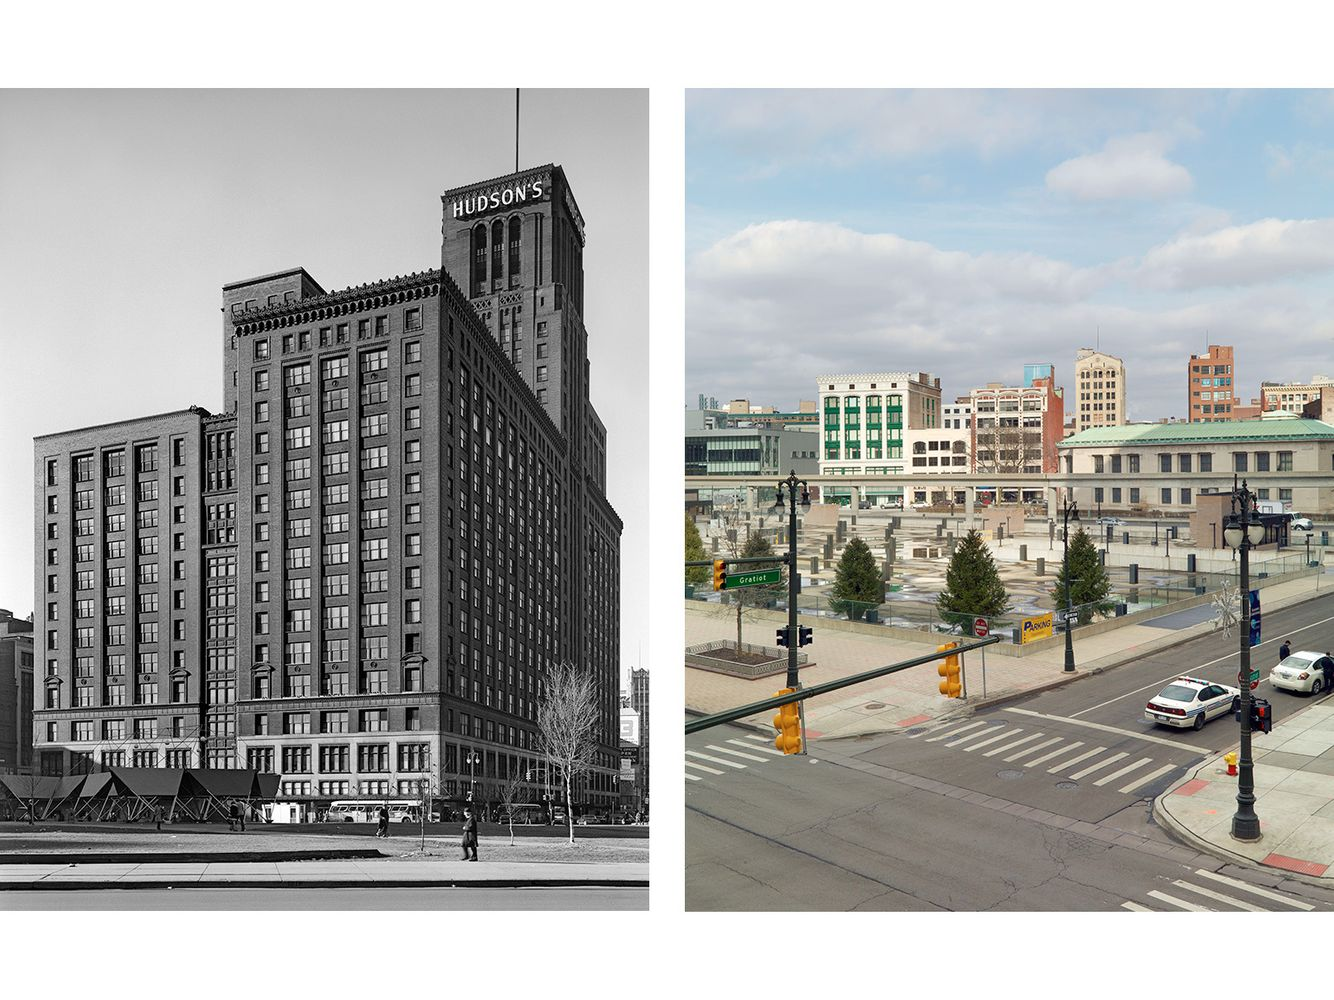 1206 Woodward Avenue, Detroit 1973-2010